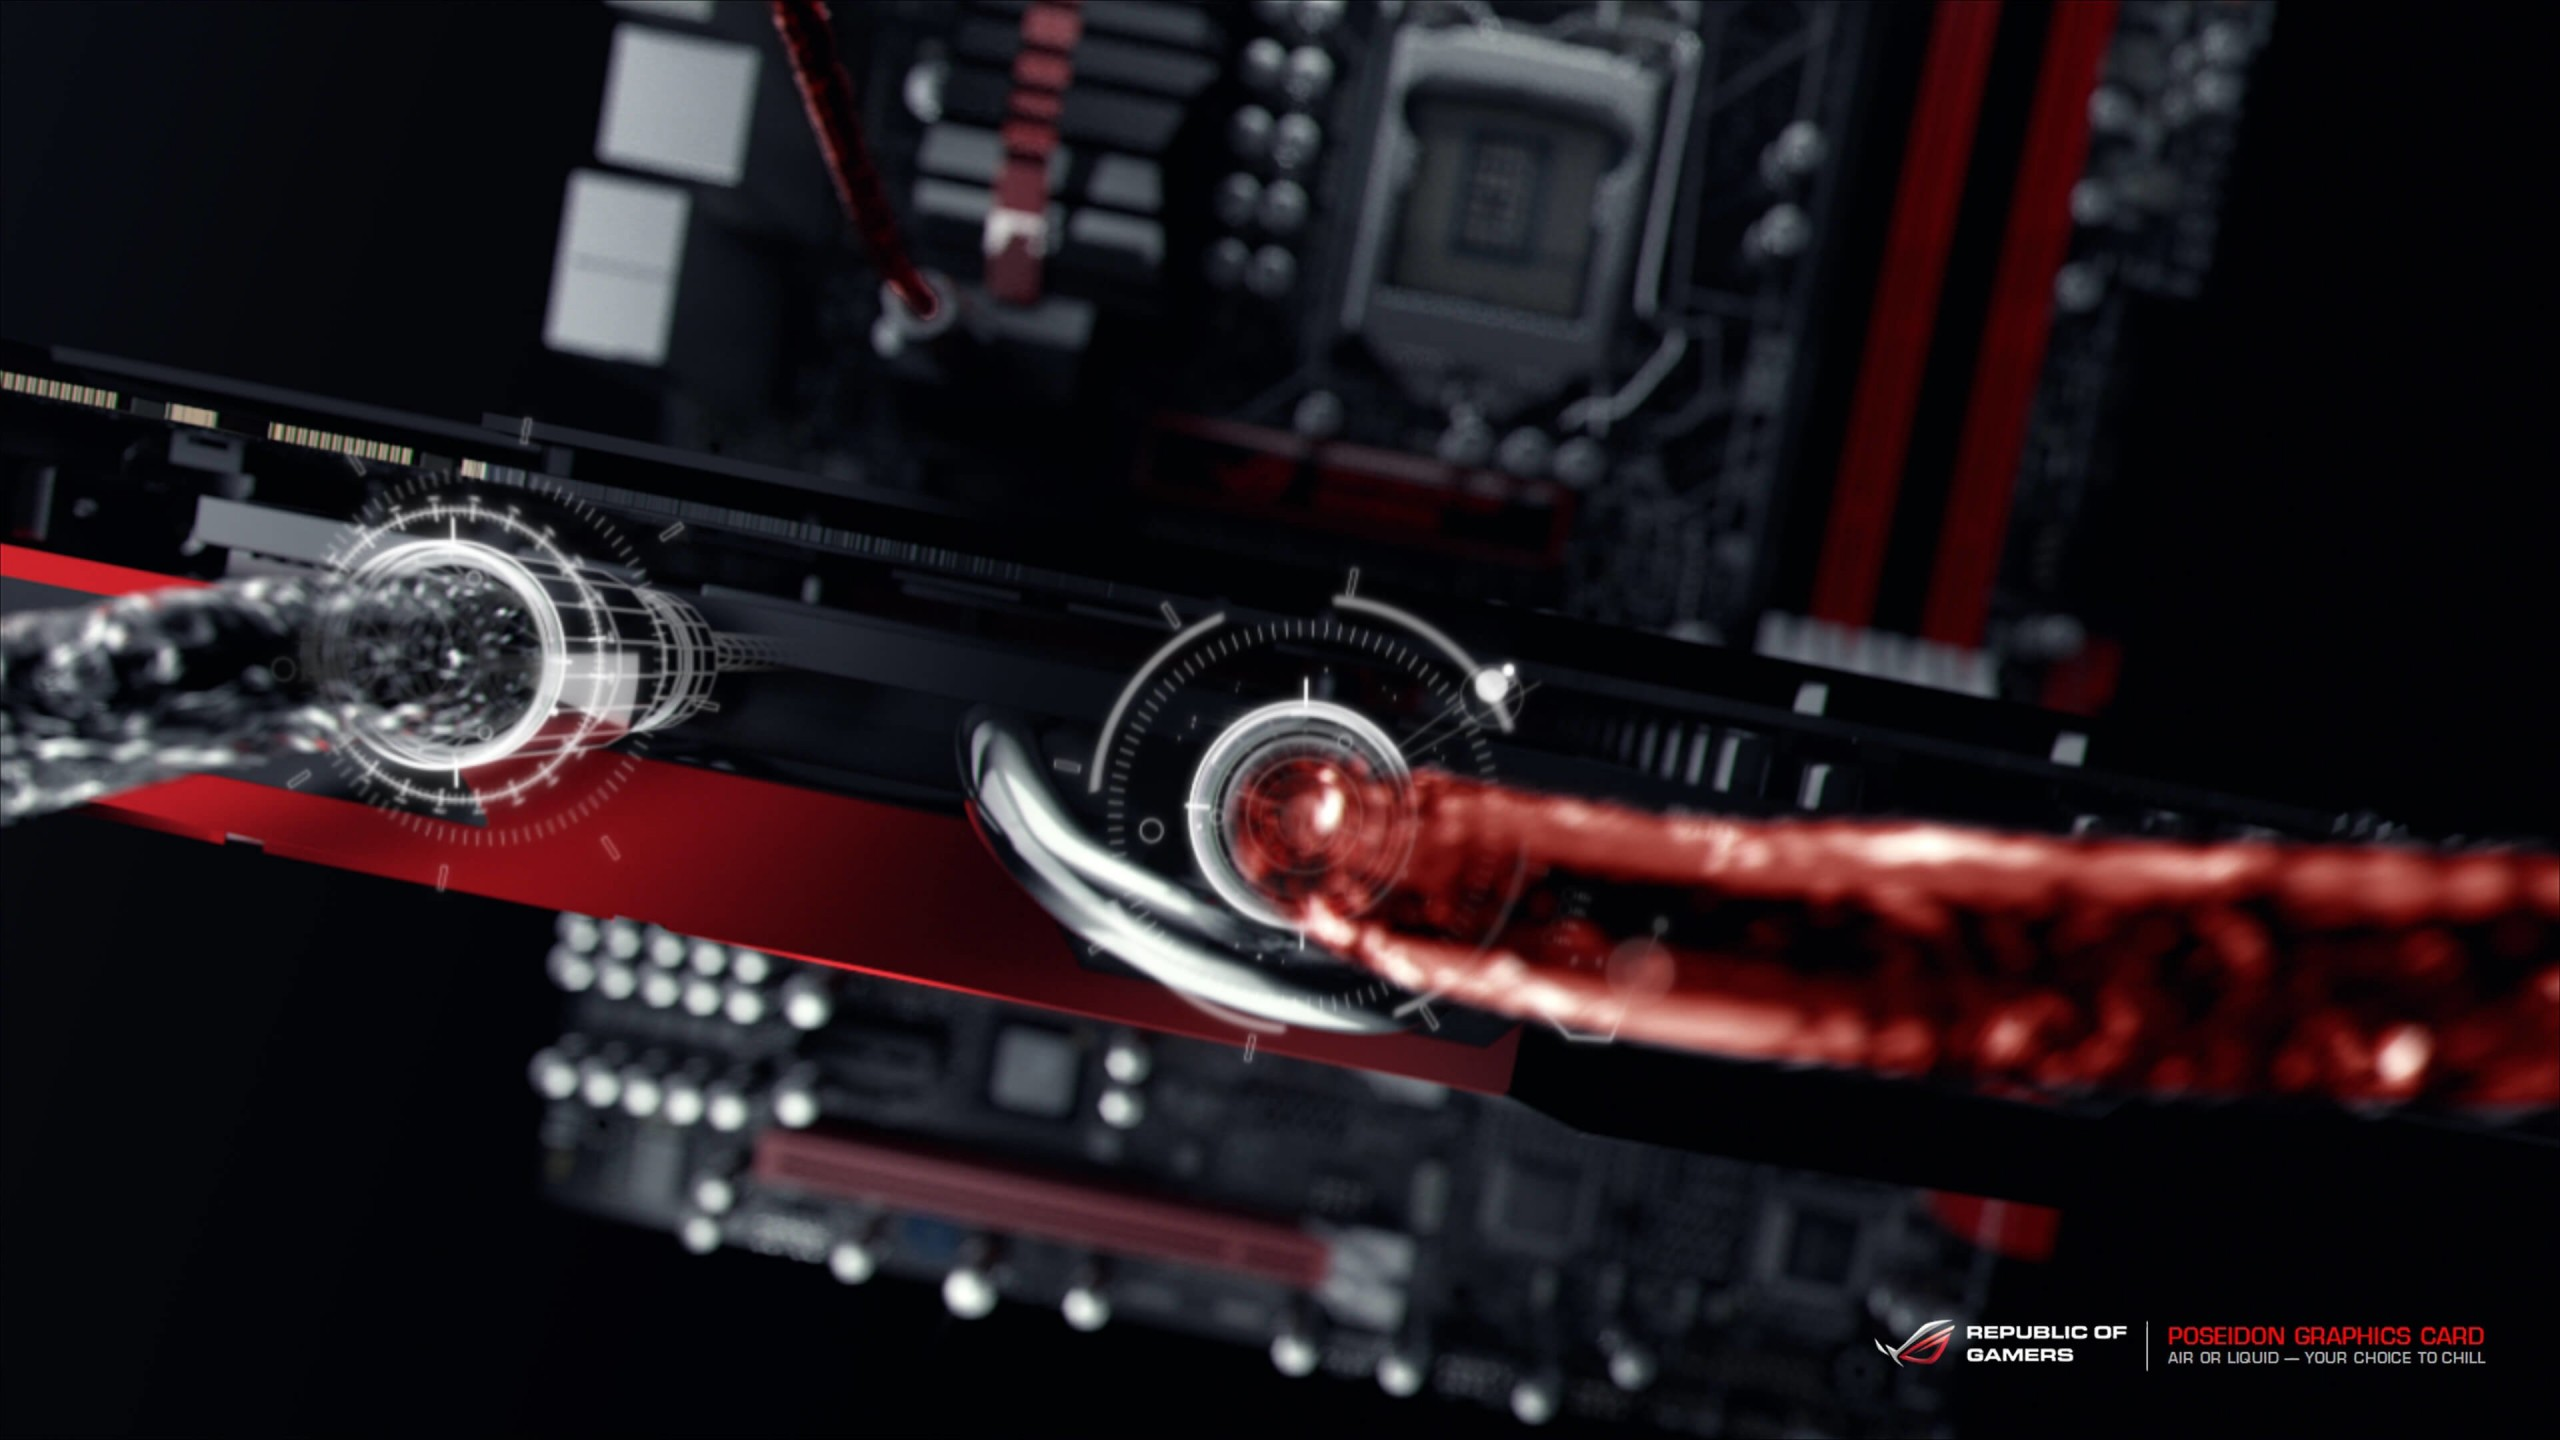 ASUS ROG Poseidon Liquid Cooling Wallpaper for Social Media YouTube Channel Art